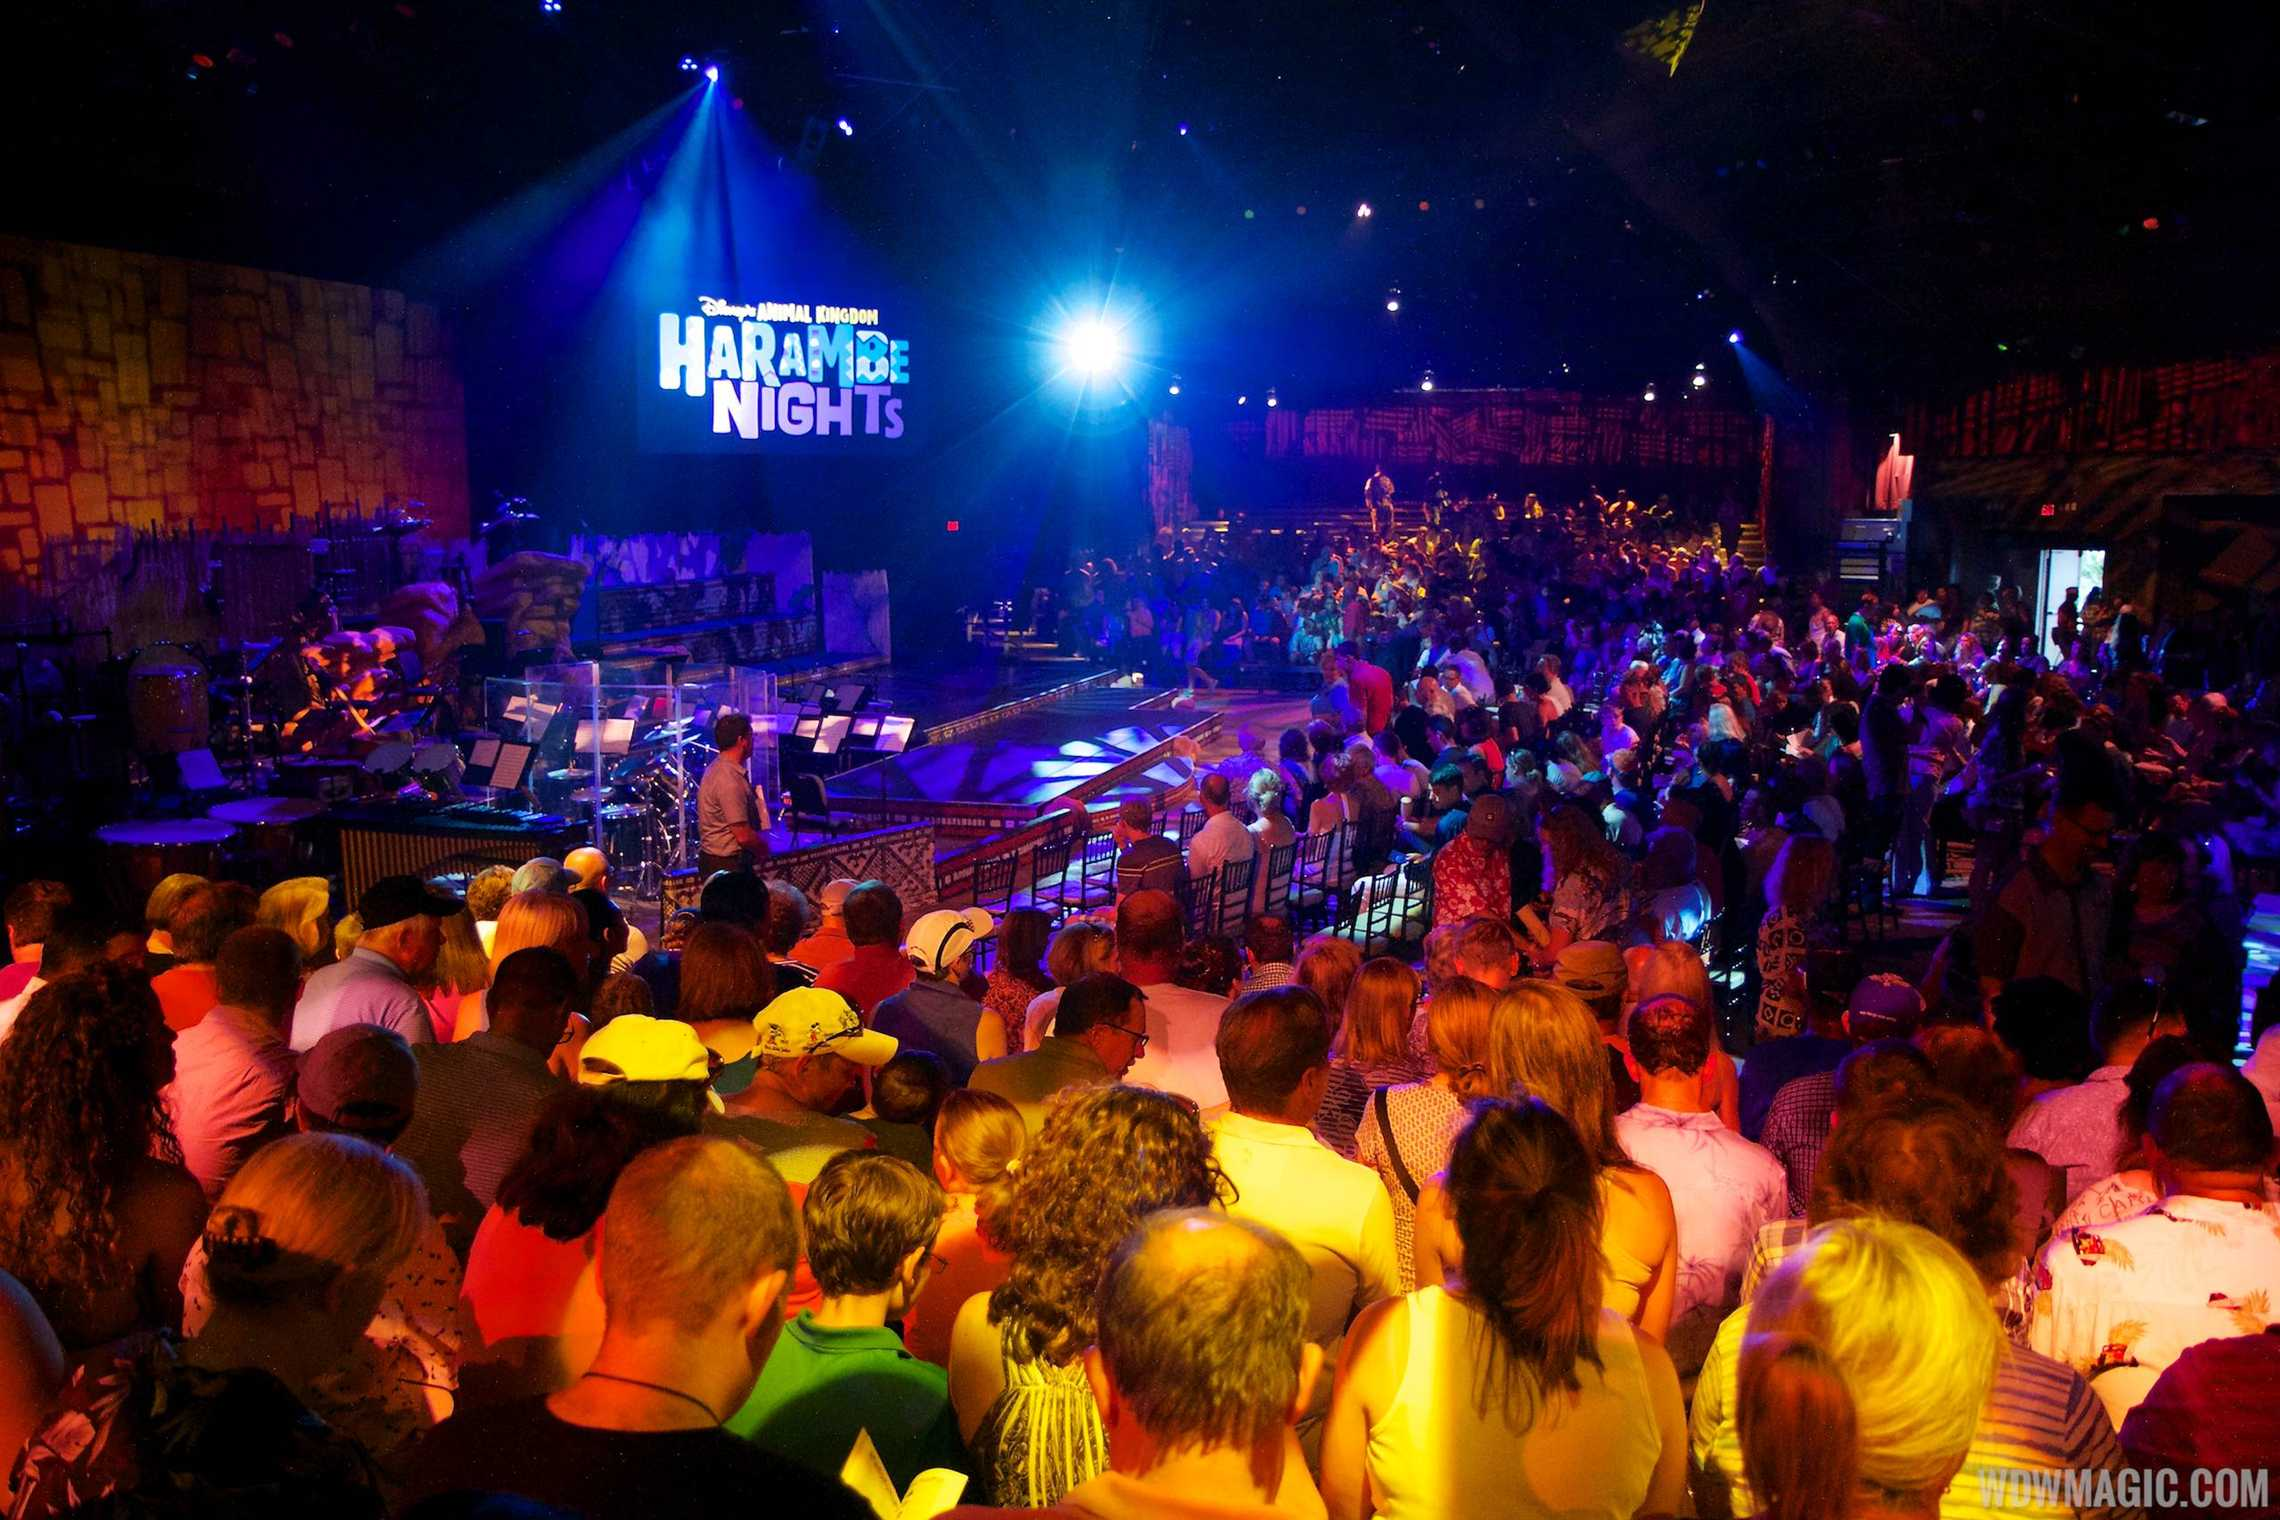 Harambe Nights - Inside the Harambe Theater